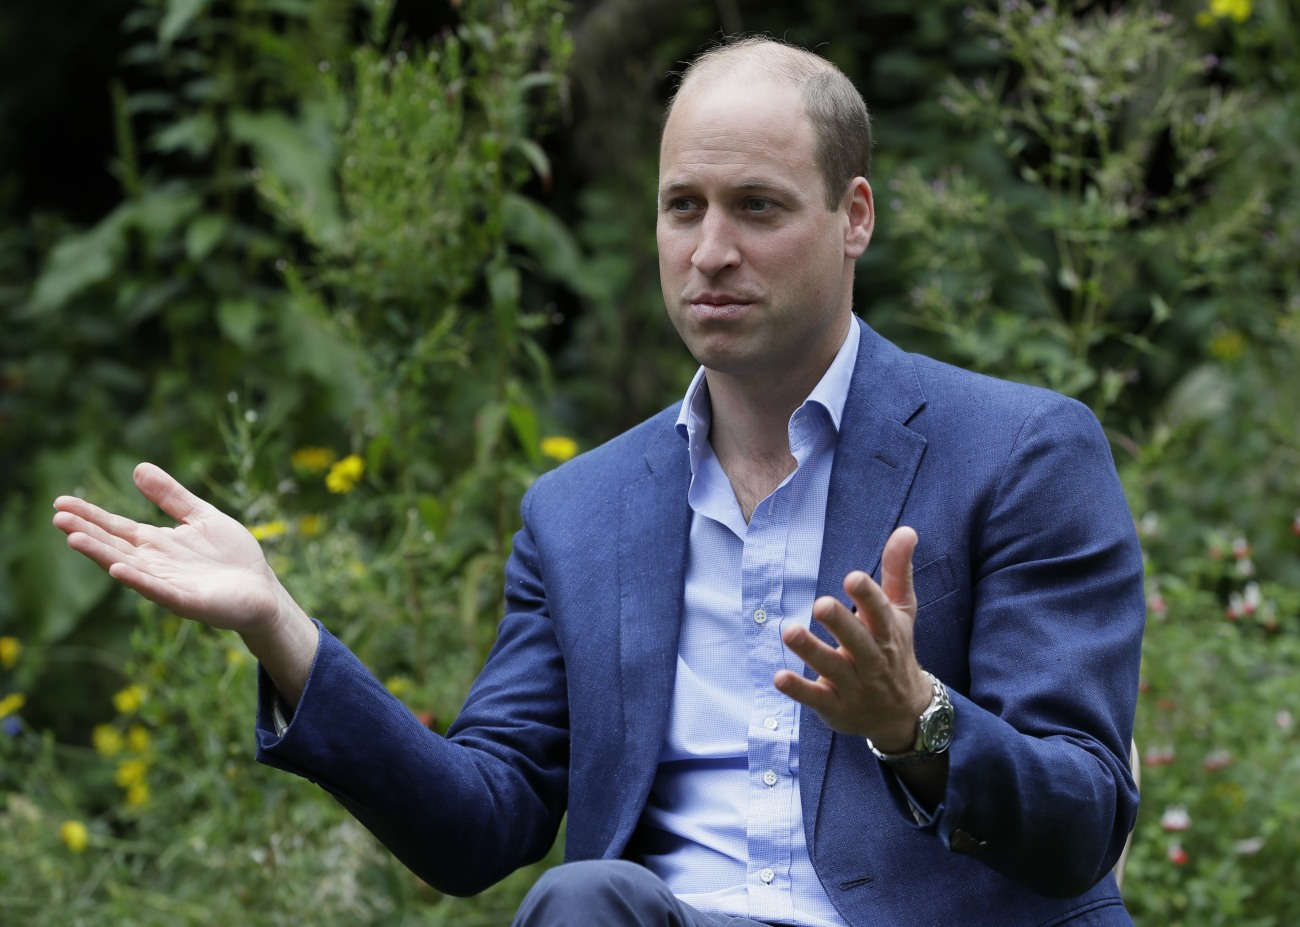 Prince William's private secretary Christian Jones has suspiciously resigned